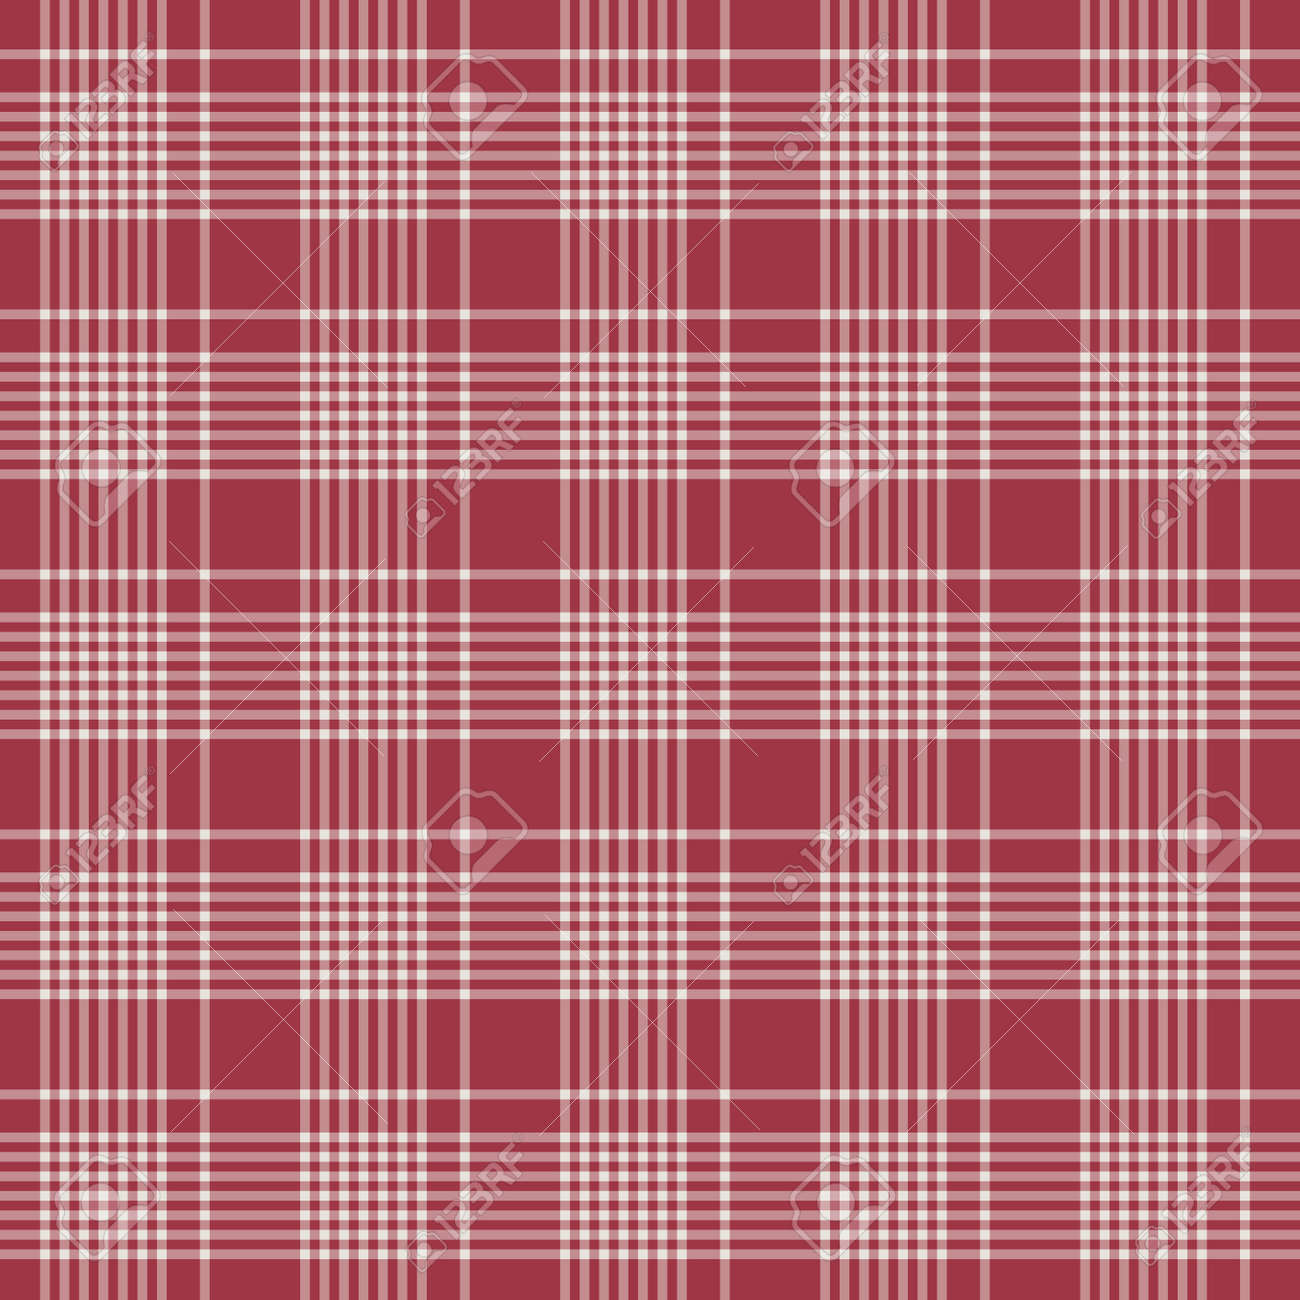 Tartan plaid pattern background. Texture for plaid, tablecloths, clothes, shirts, dresses, paper, bedding, blankets, quilts and other textile products. Vector illustration EPS 10 - 158348435